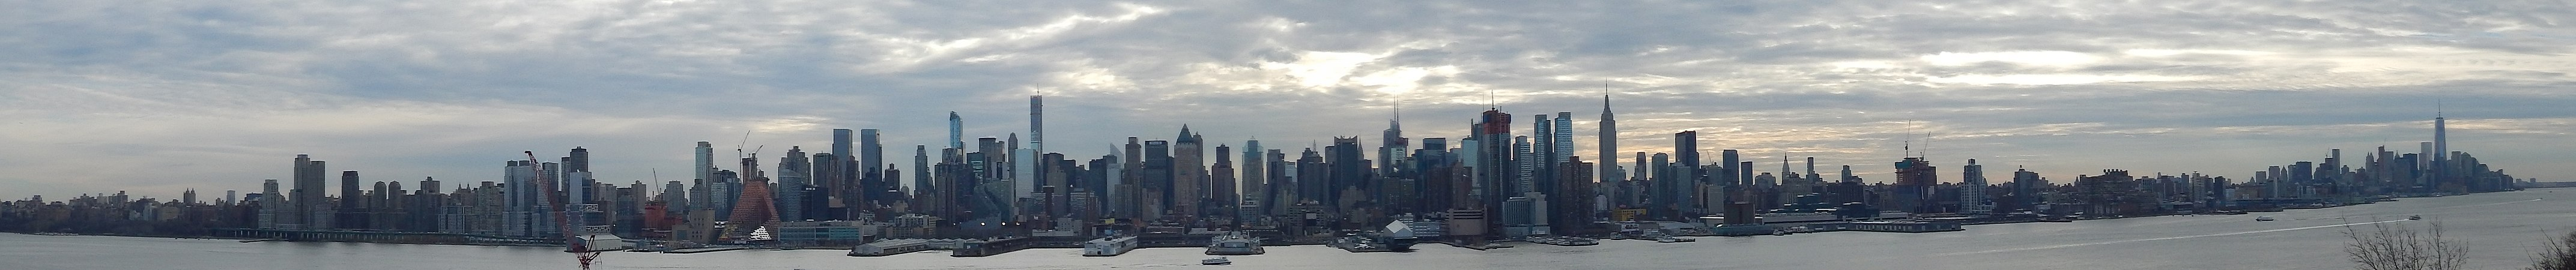 WestsideManhattanPanorama.jpg